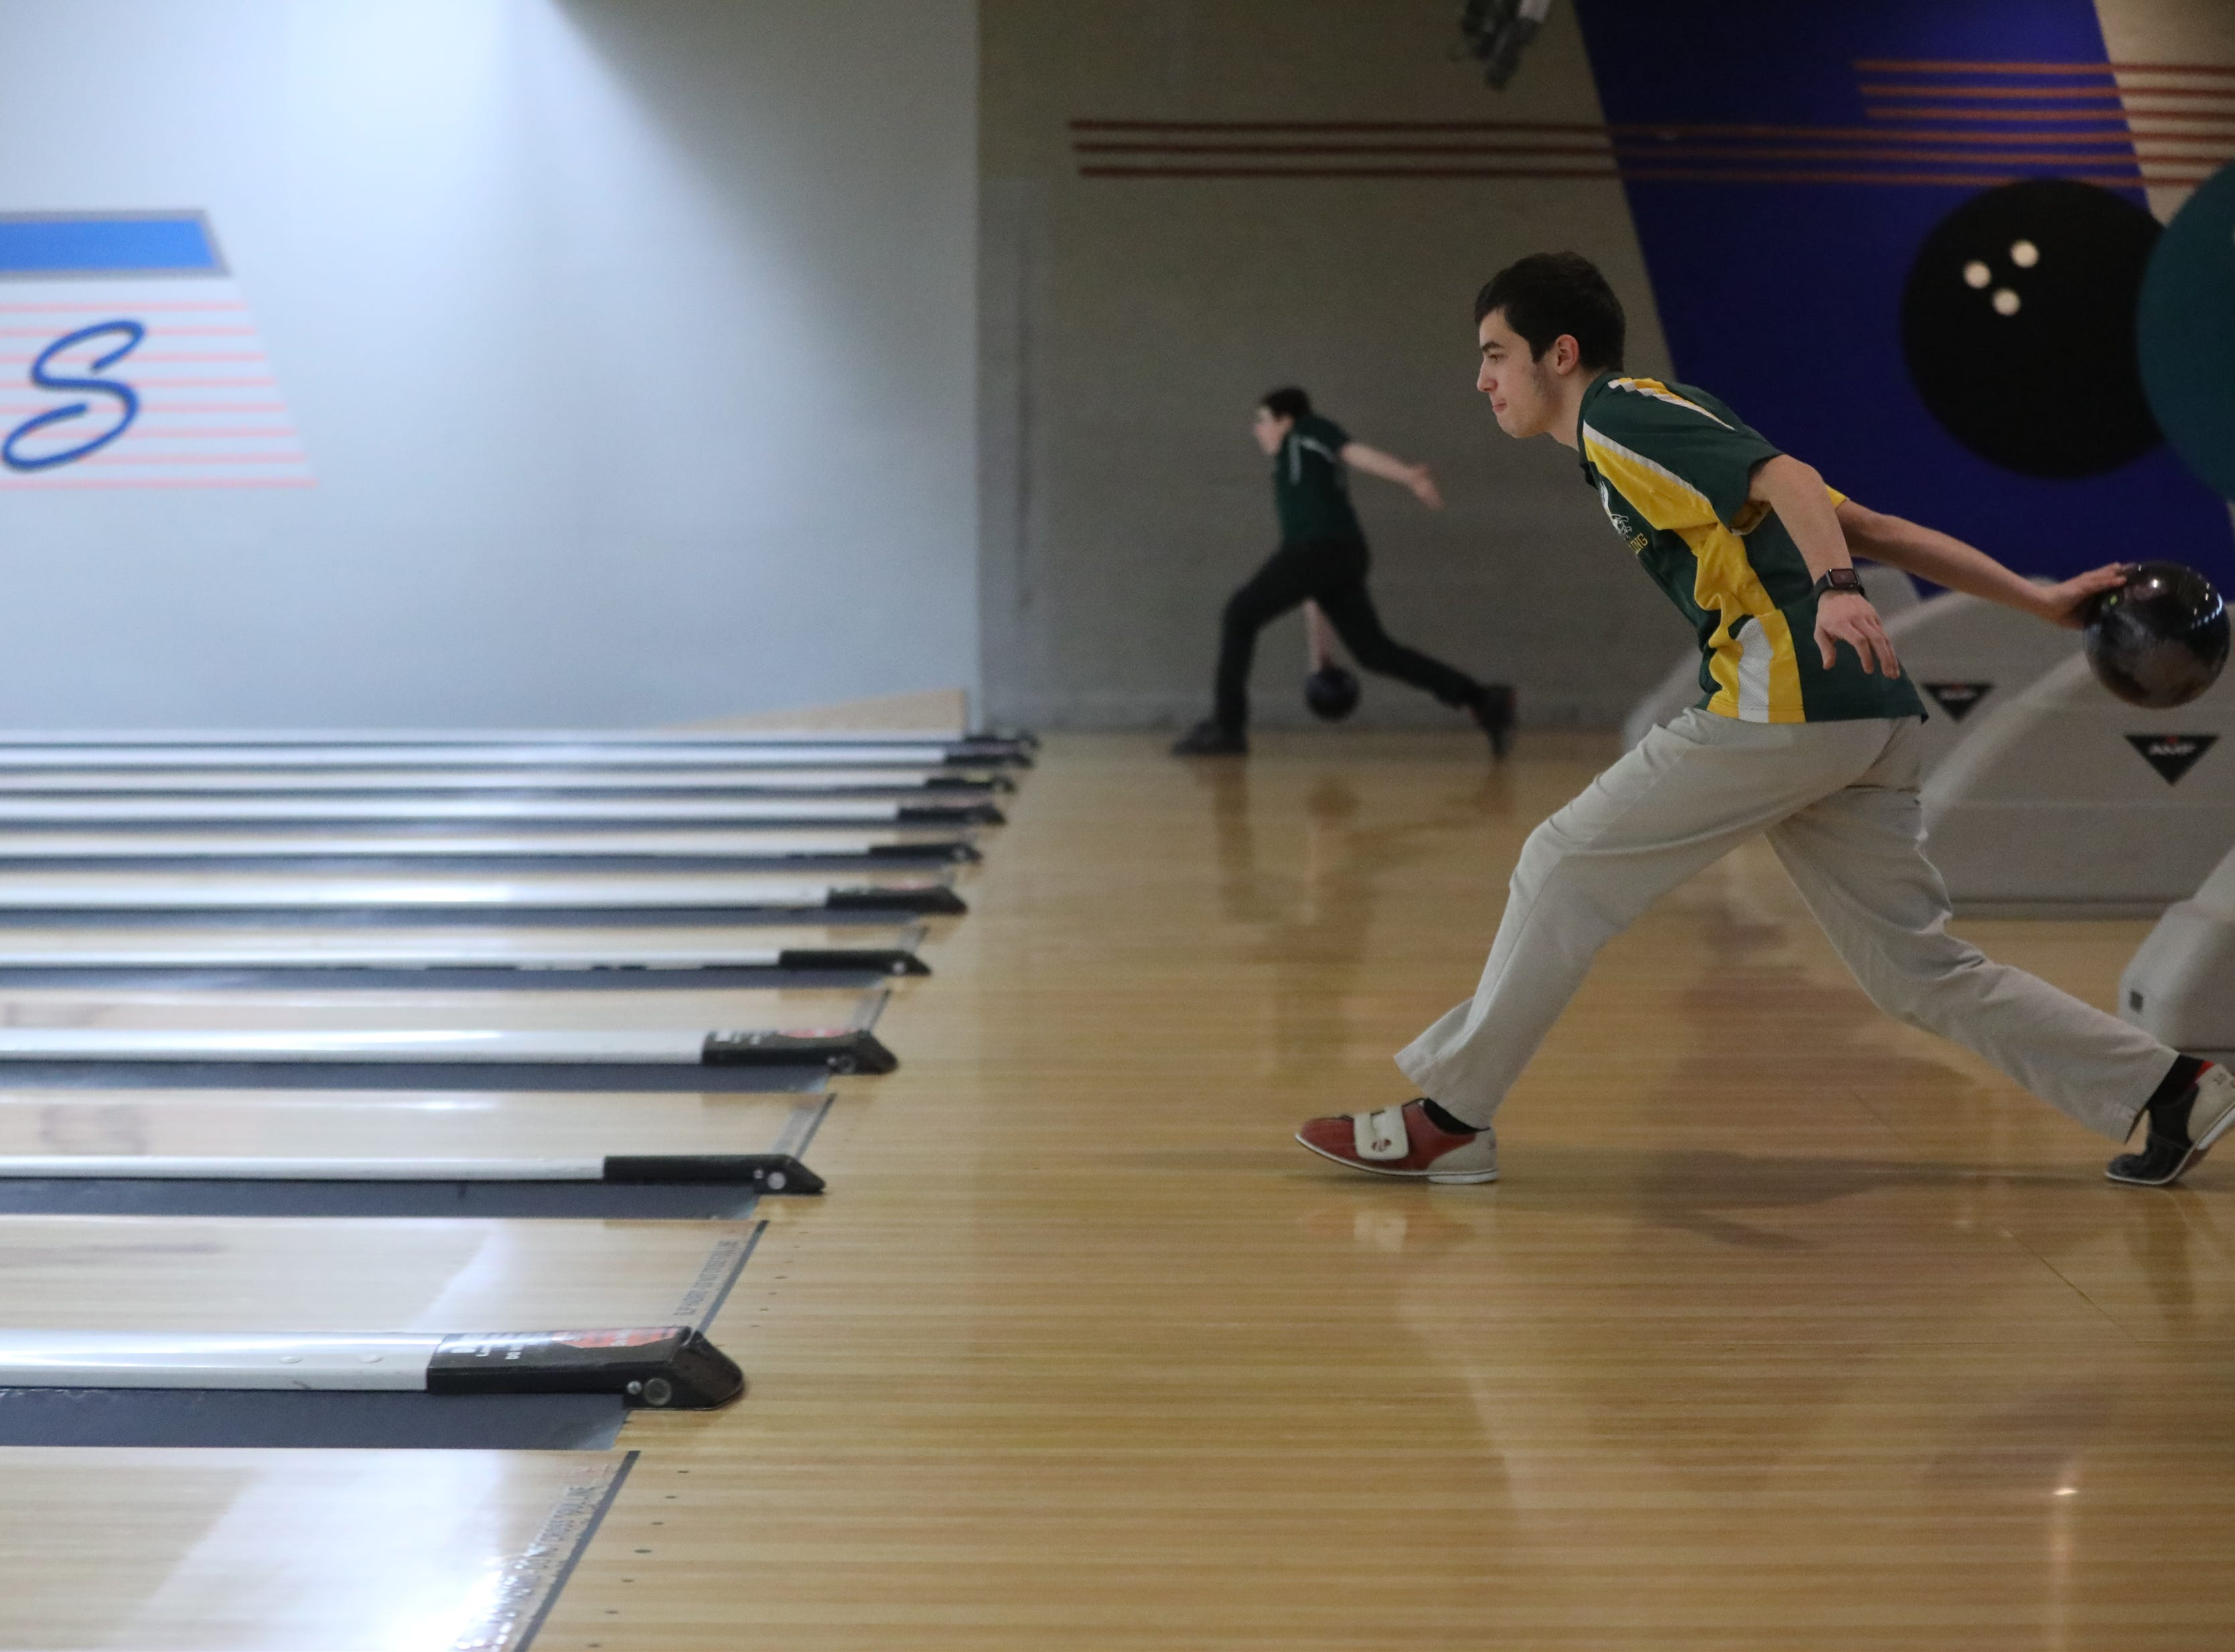 Dom Pereira, of Morris Knolls, competes in the Morris County Bowling Tournament. Thursday, January 24, 2019